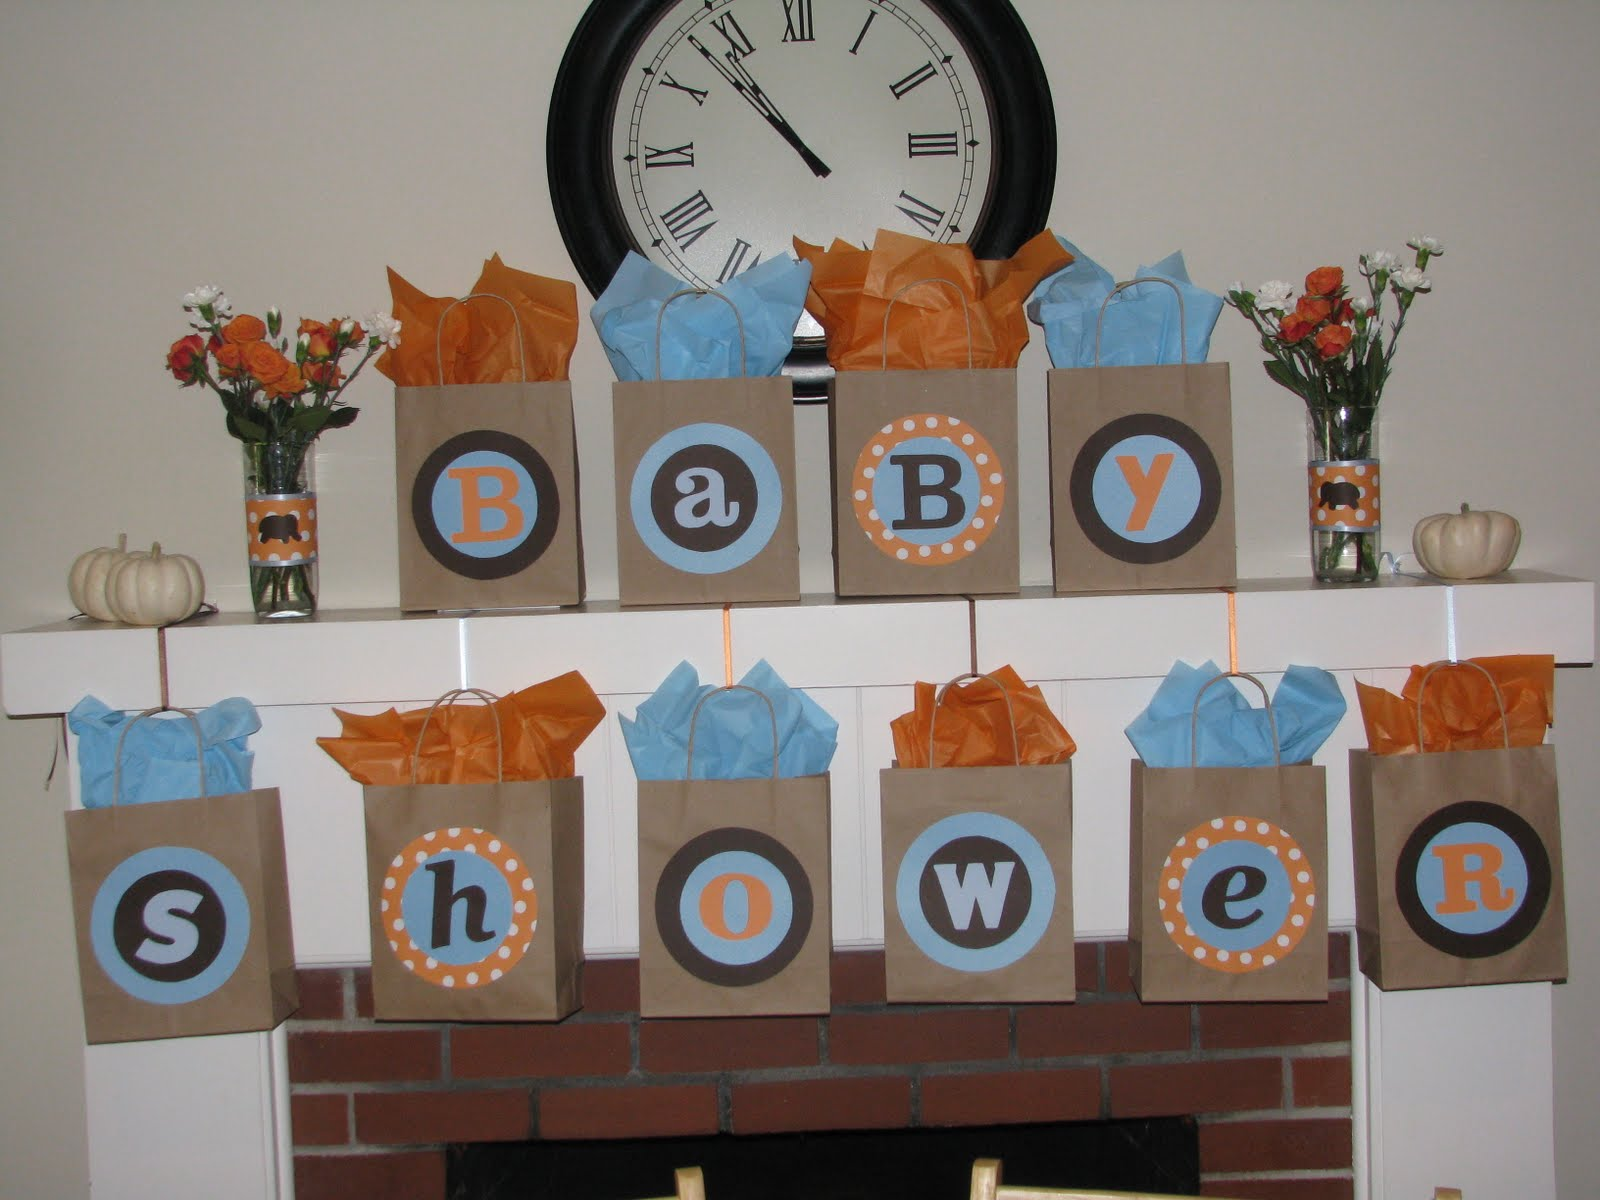 rachel 39 s party place elephant themed baby shower. Black Bedroom Furniture Sets. Home Design Ideas